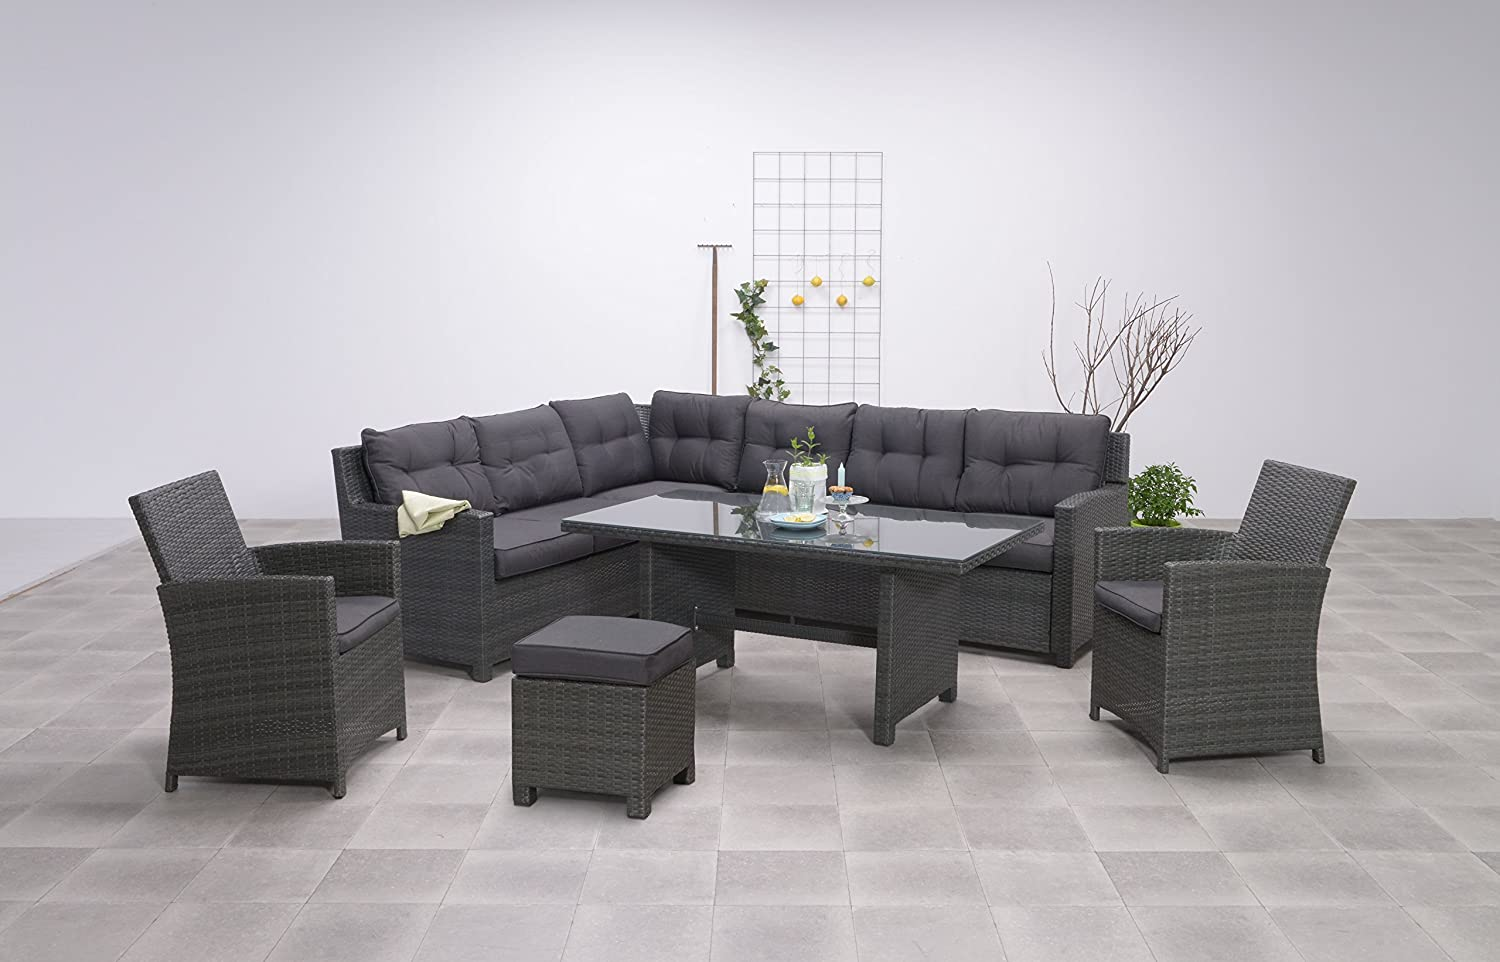 Rattanmöbel Gebraucht Hohe Dinning Poly Rattan Lounge Quotaboyne Quot Inkl Zwei